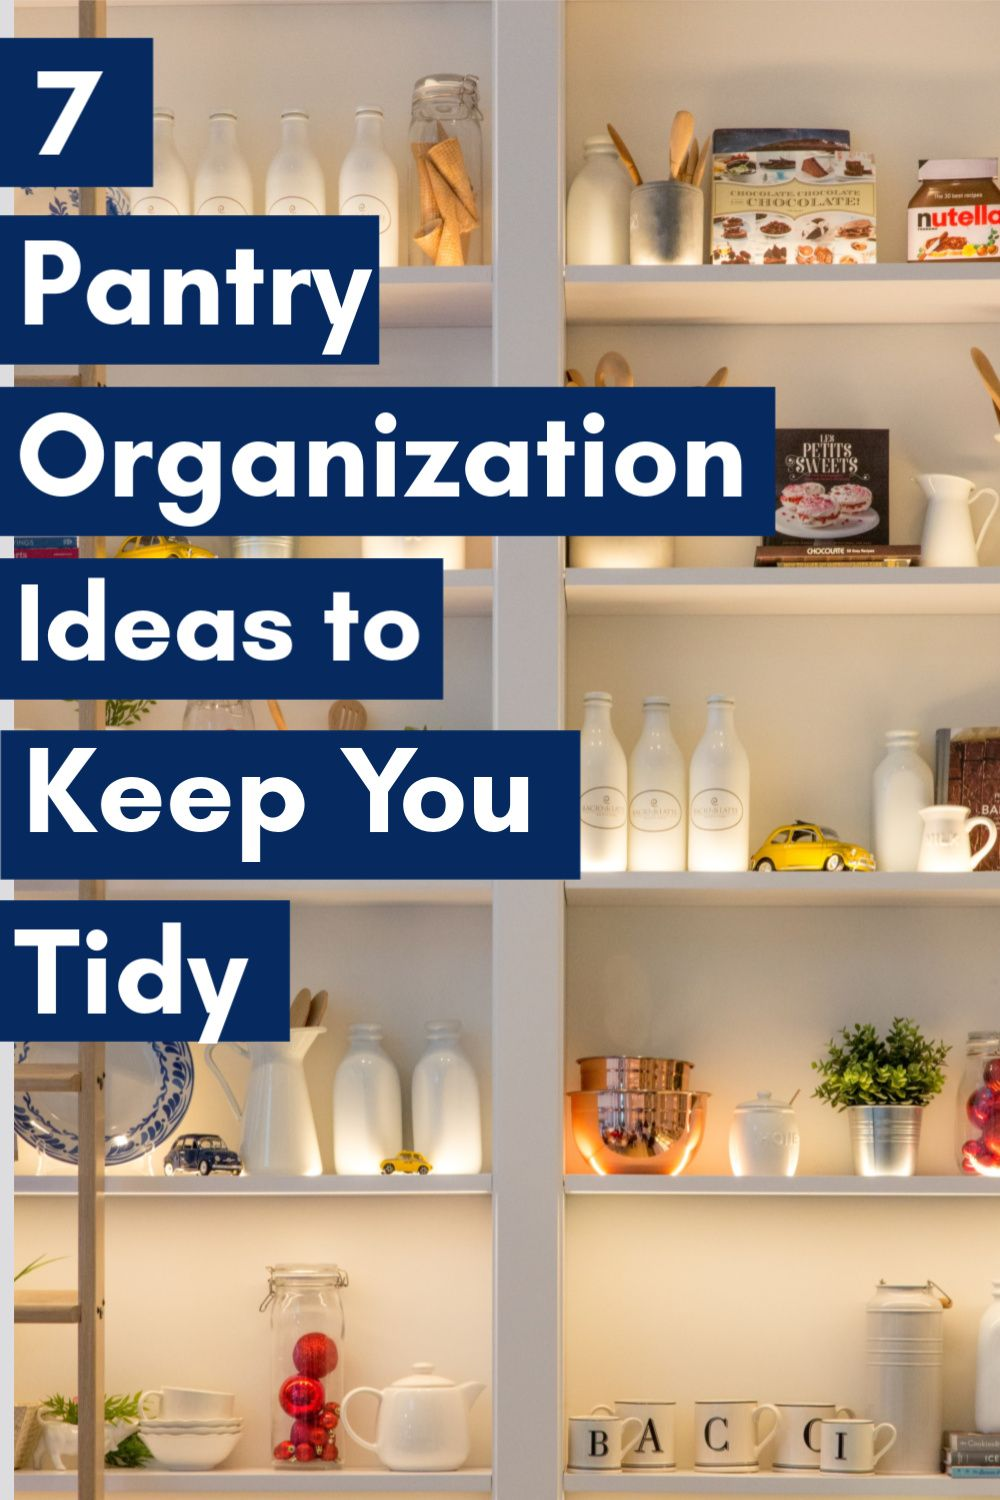 7 Pantry Organization Ideas + How t…